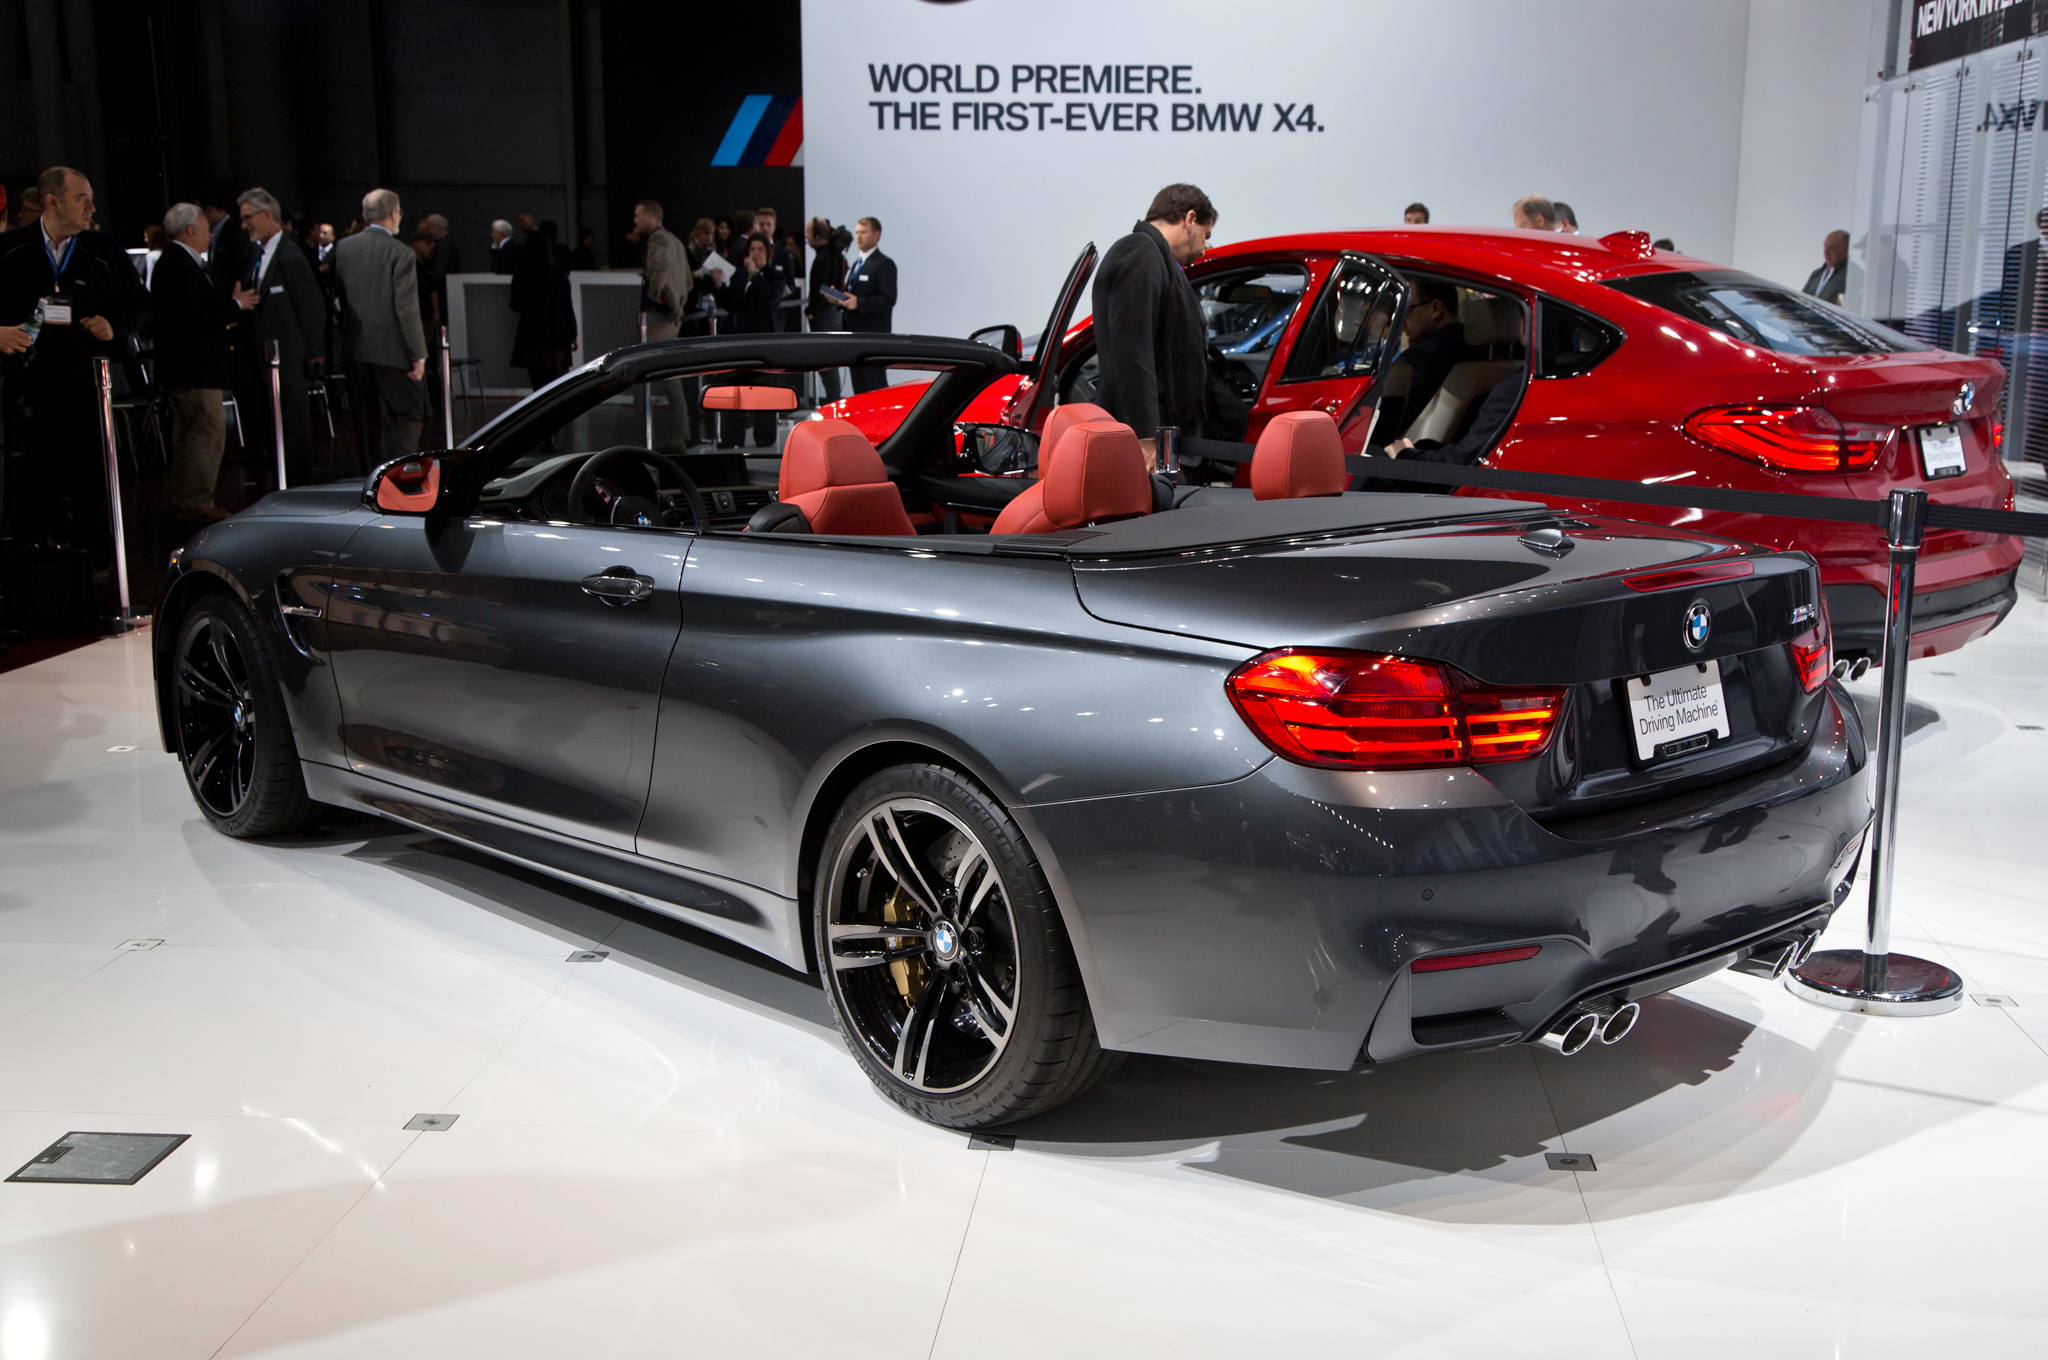 2015 Bmw M4 Convertible Rear Side Auto Show (Photo 13 of 50)